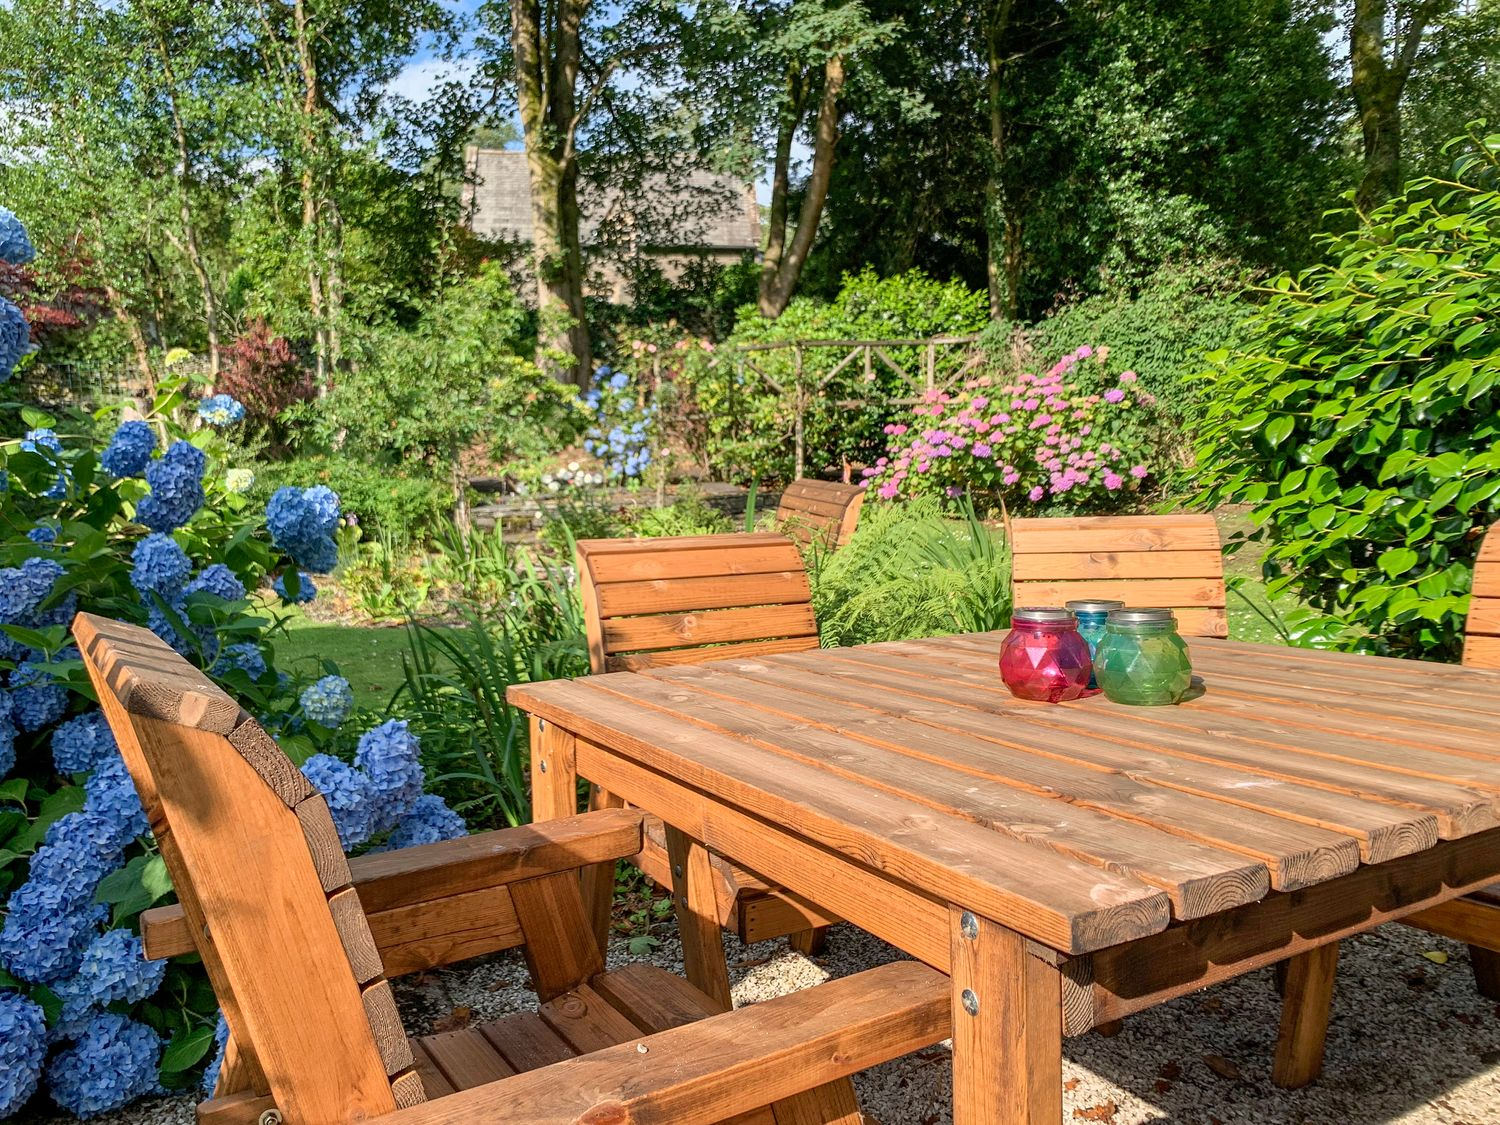 Cottage garden with outdoor table and chairs, green lawn and colourful flowers in the background